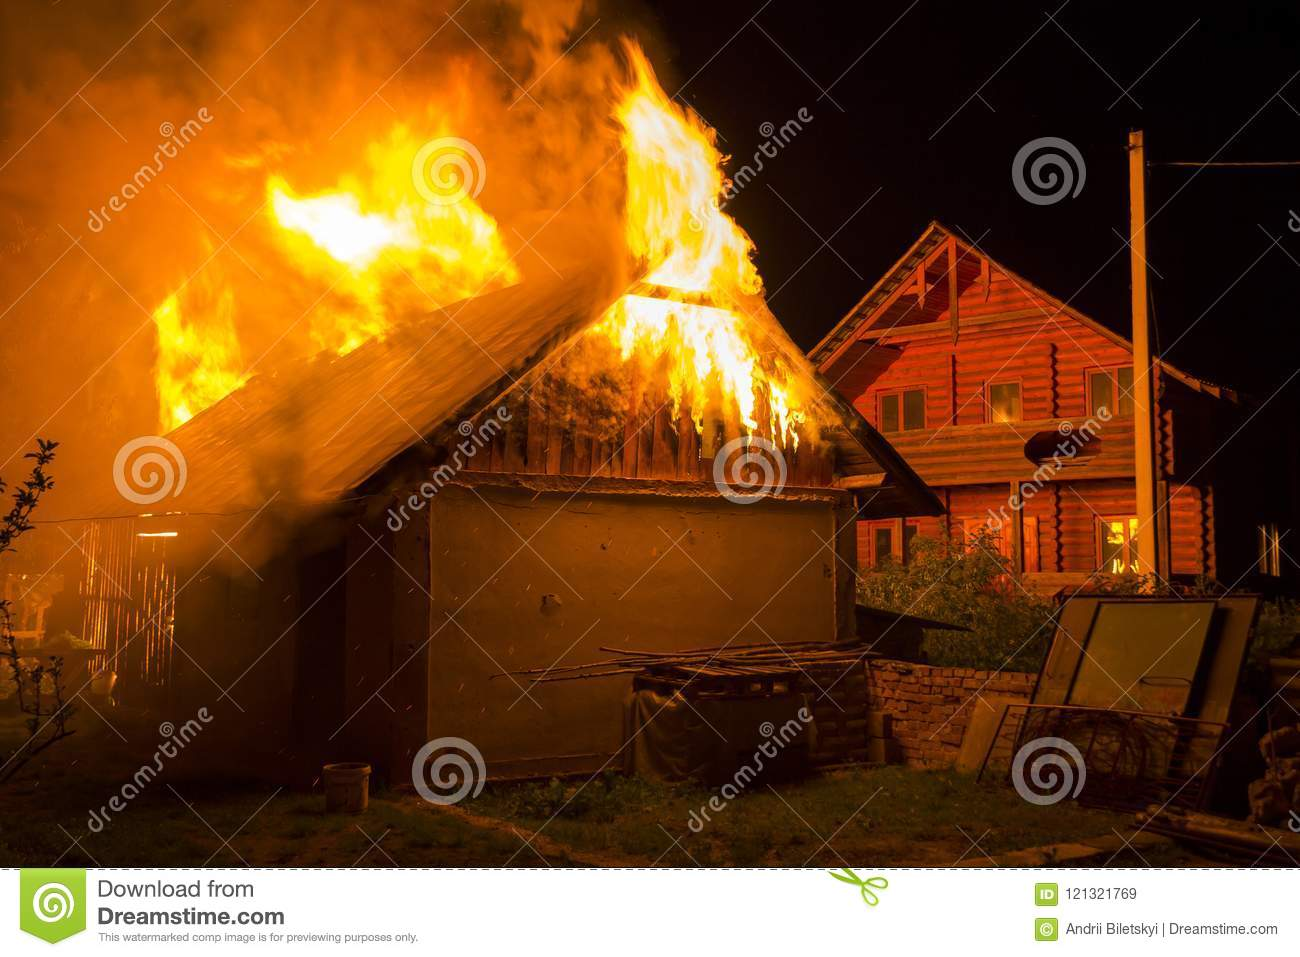 Wooden barn burning at night. High orange fire flames, dense smoke from under tiled roof on dark sky, trees silhouettes and reside